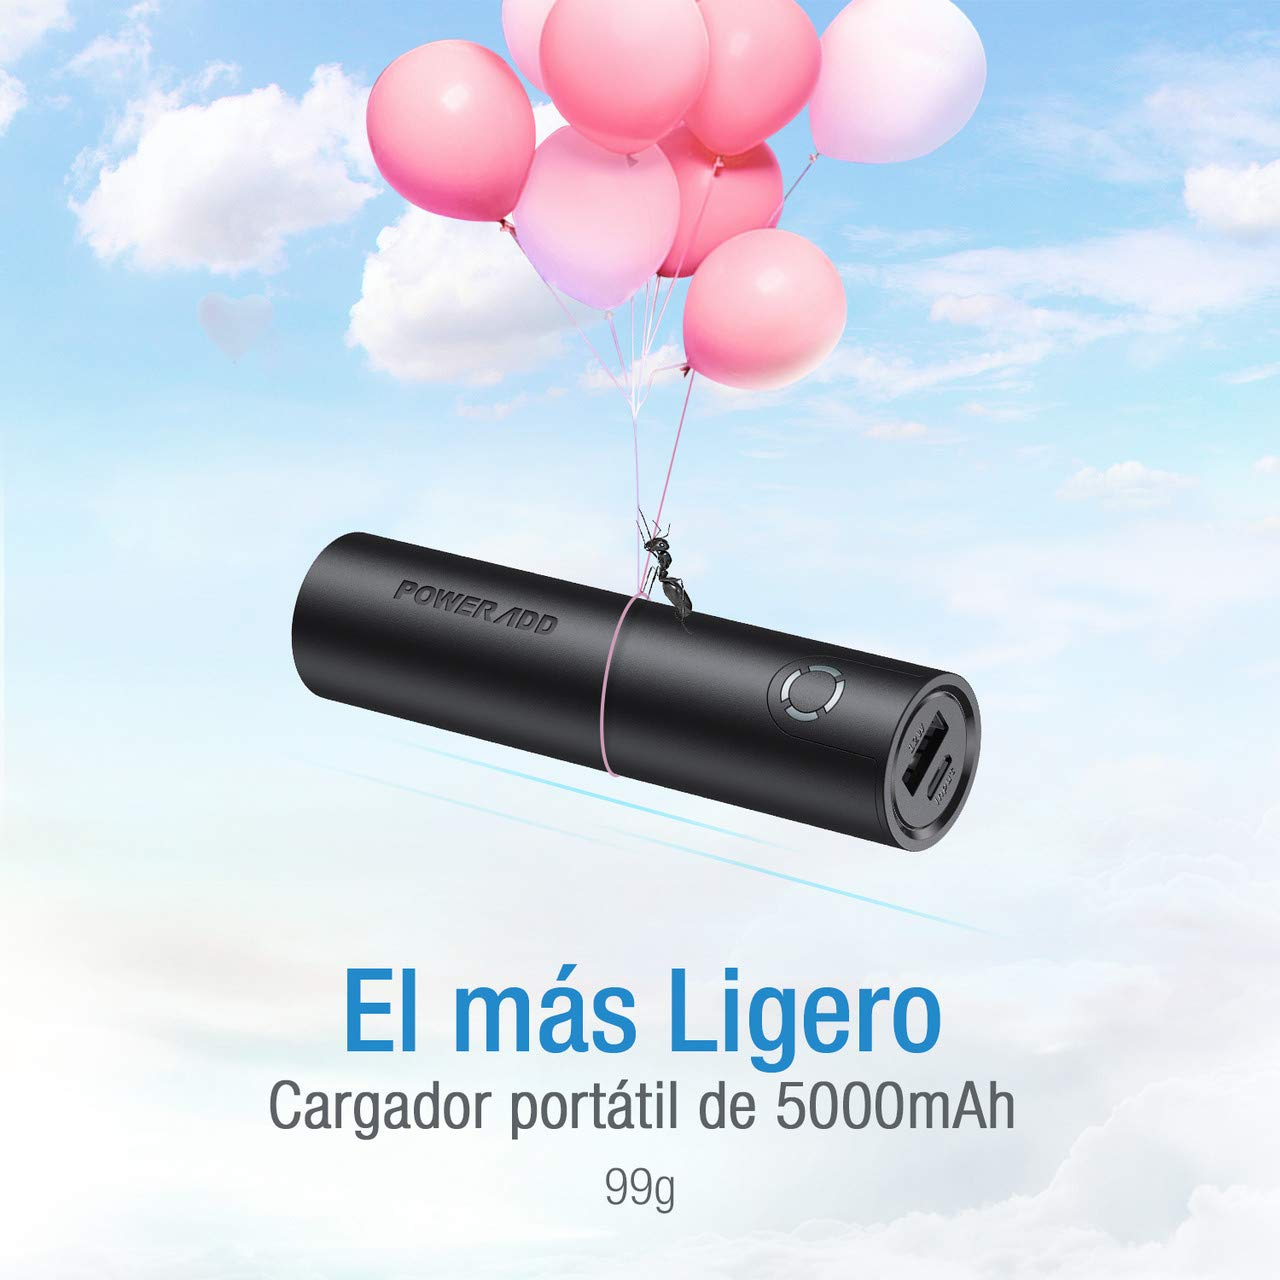 POWERADD Energy Cell 5000mAh Power Bank Cargador Portátil para iPhone,Samsung,Huawei y Más Dispositivos-Negro